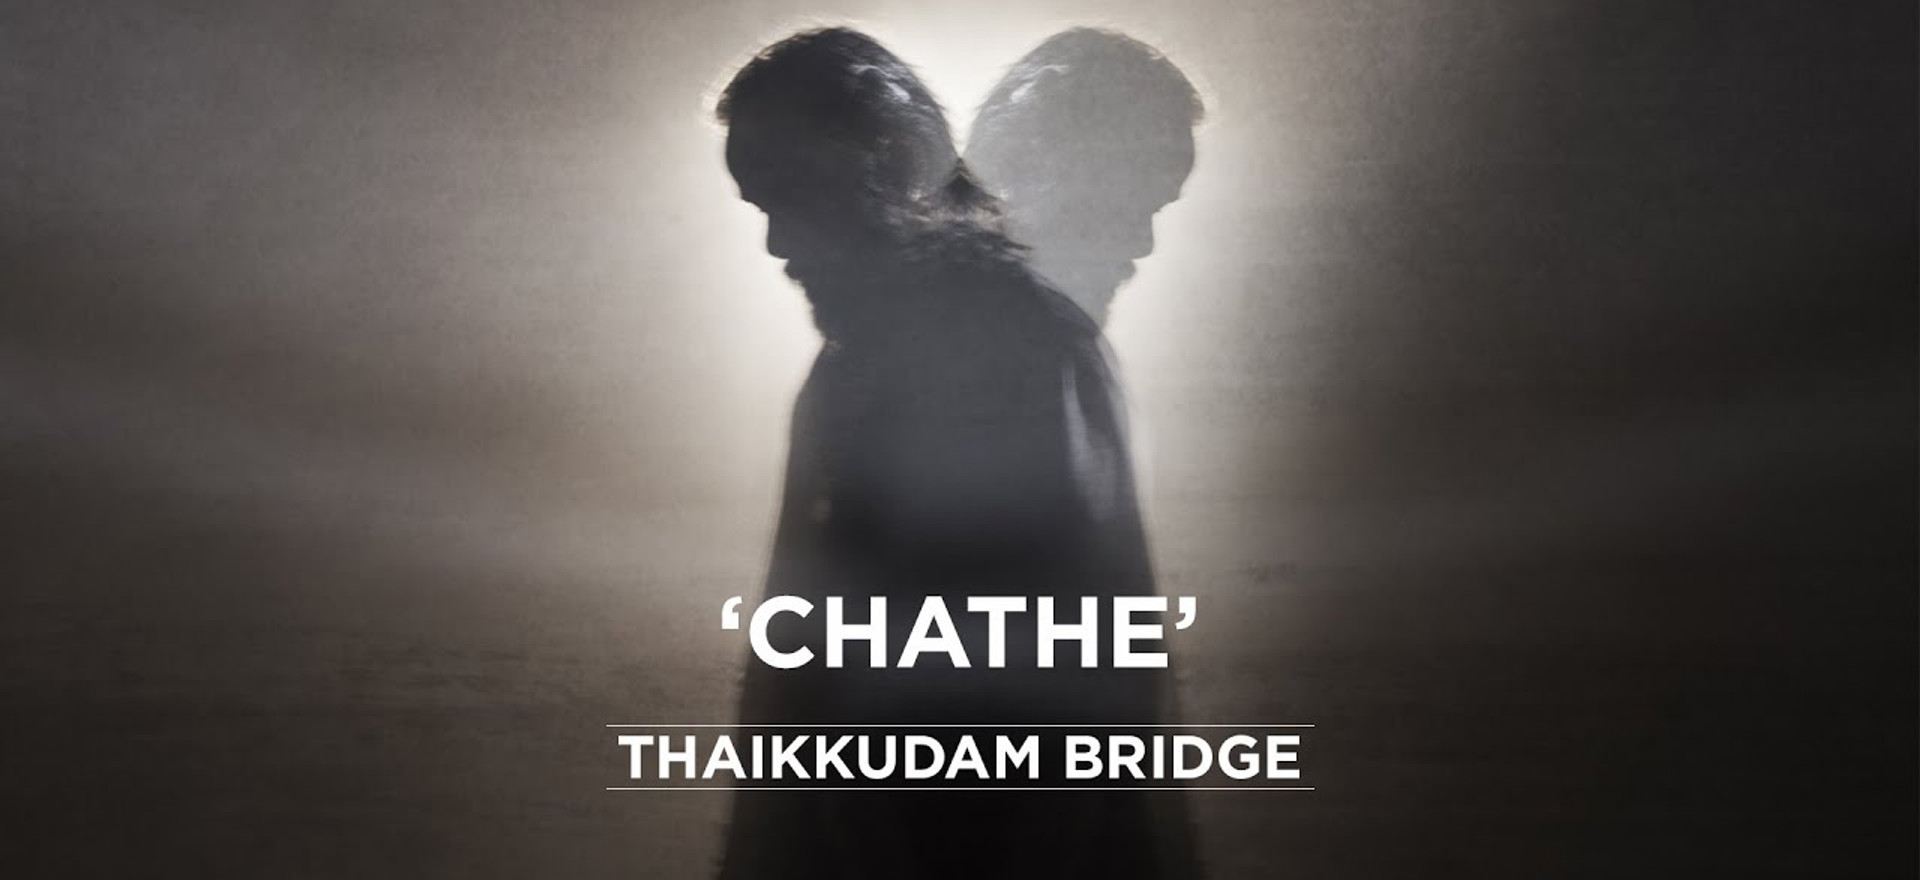 Chathe - Thaikkudam Bridge - Official Music Video HD